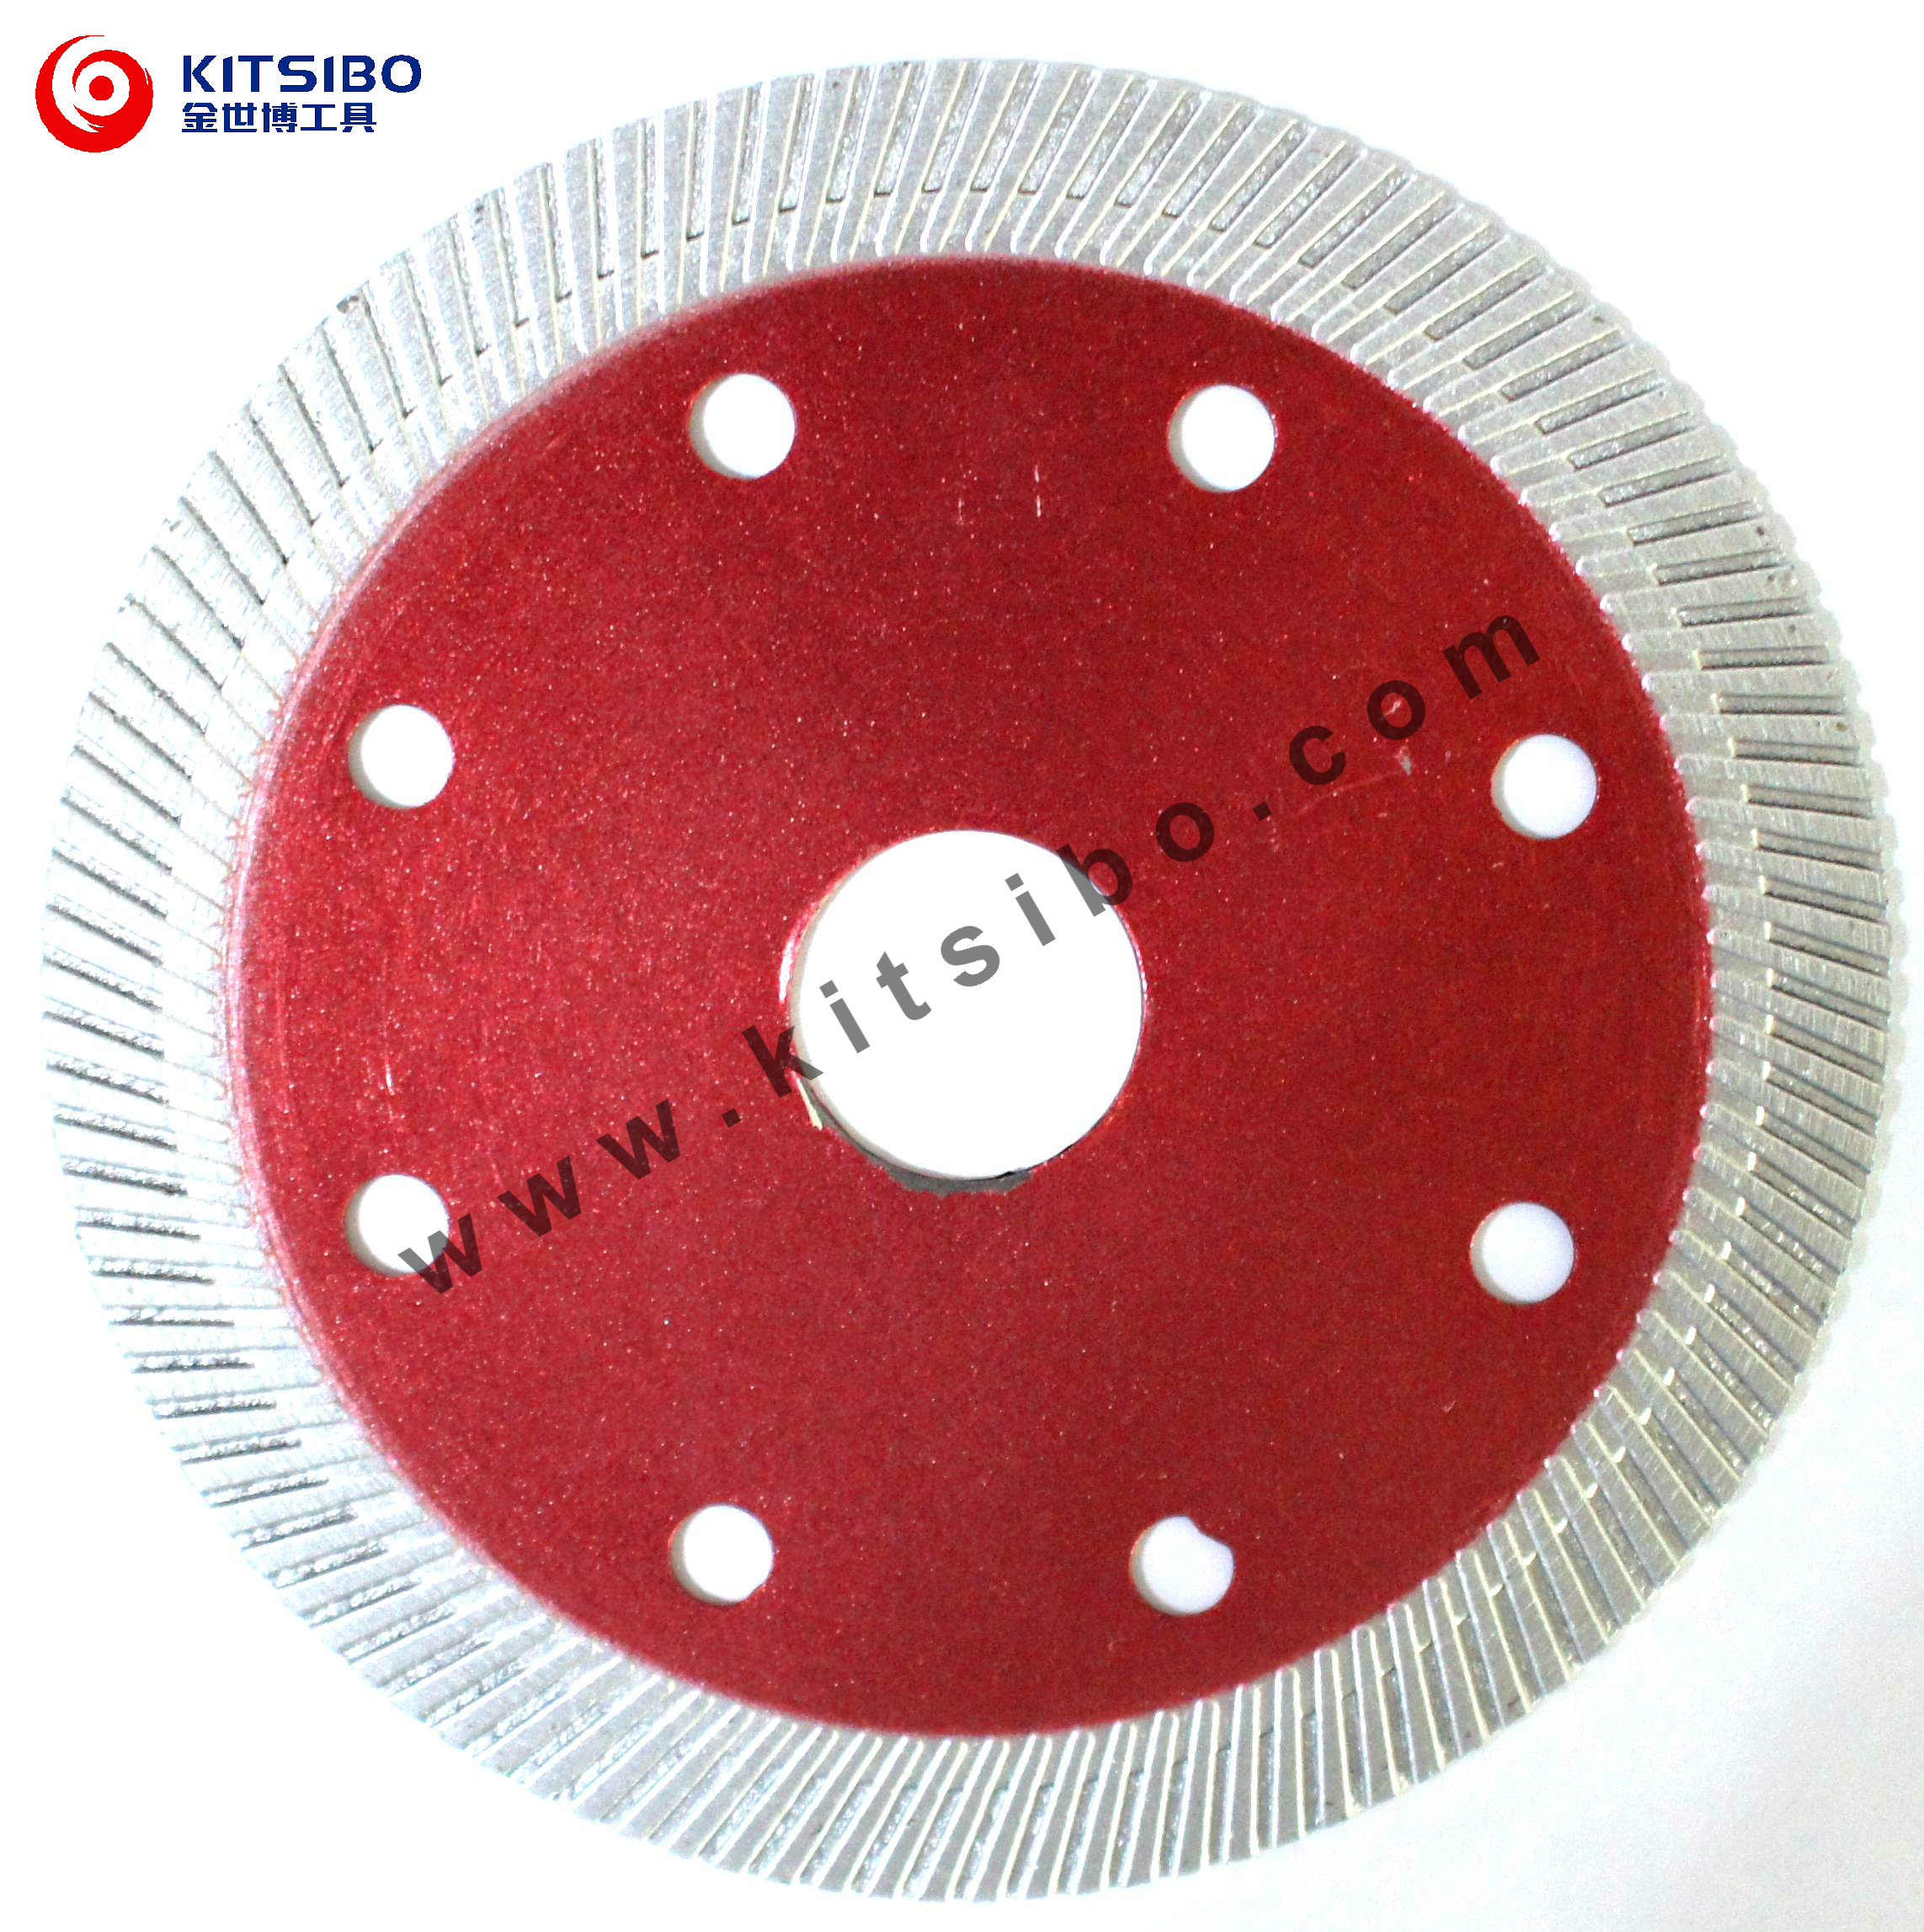 Diamond saw blade for ceramic and granite tiles